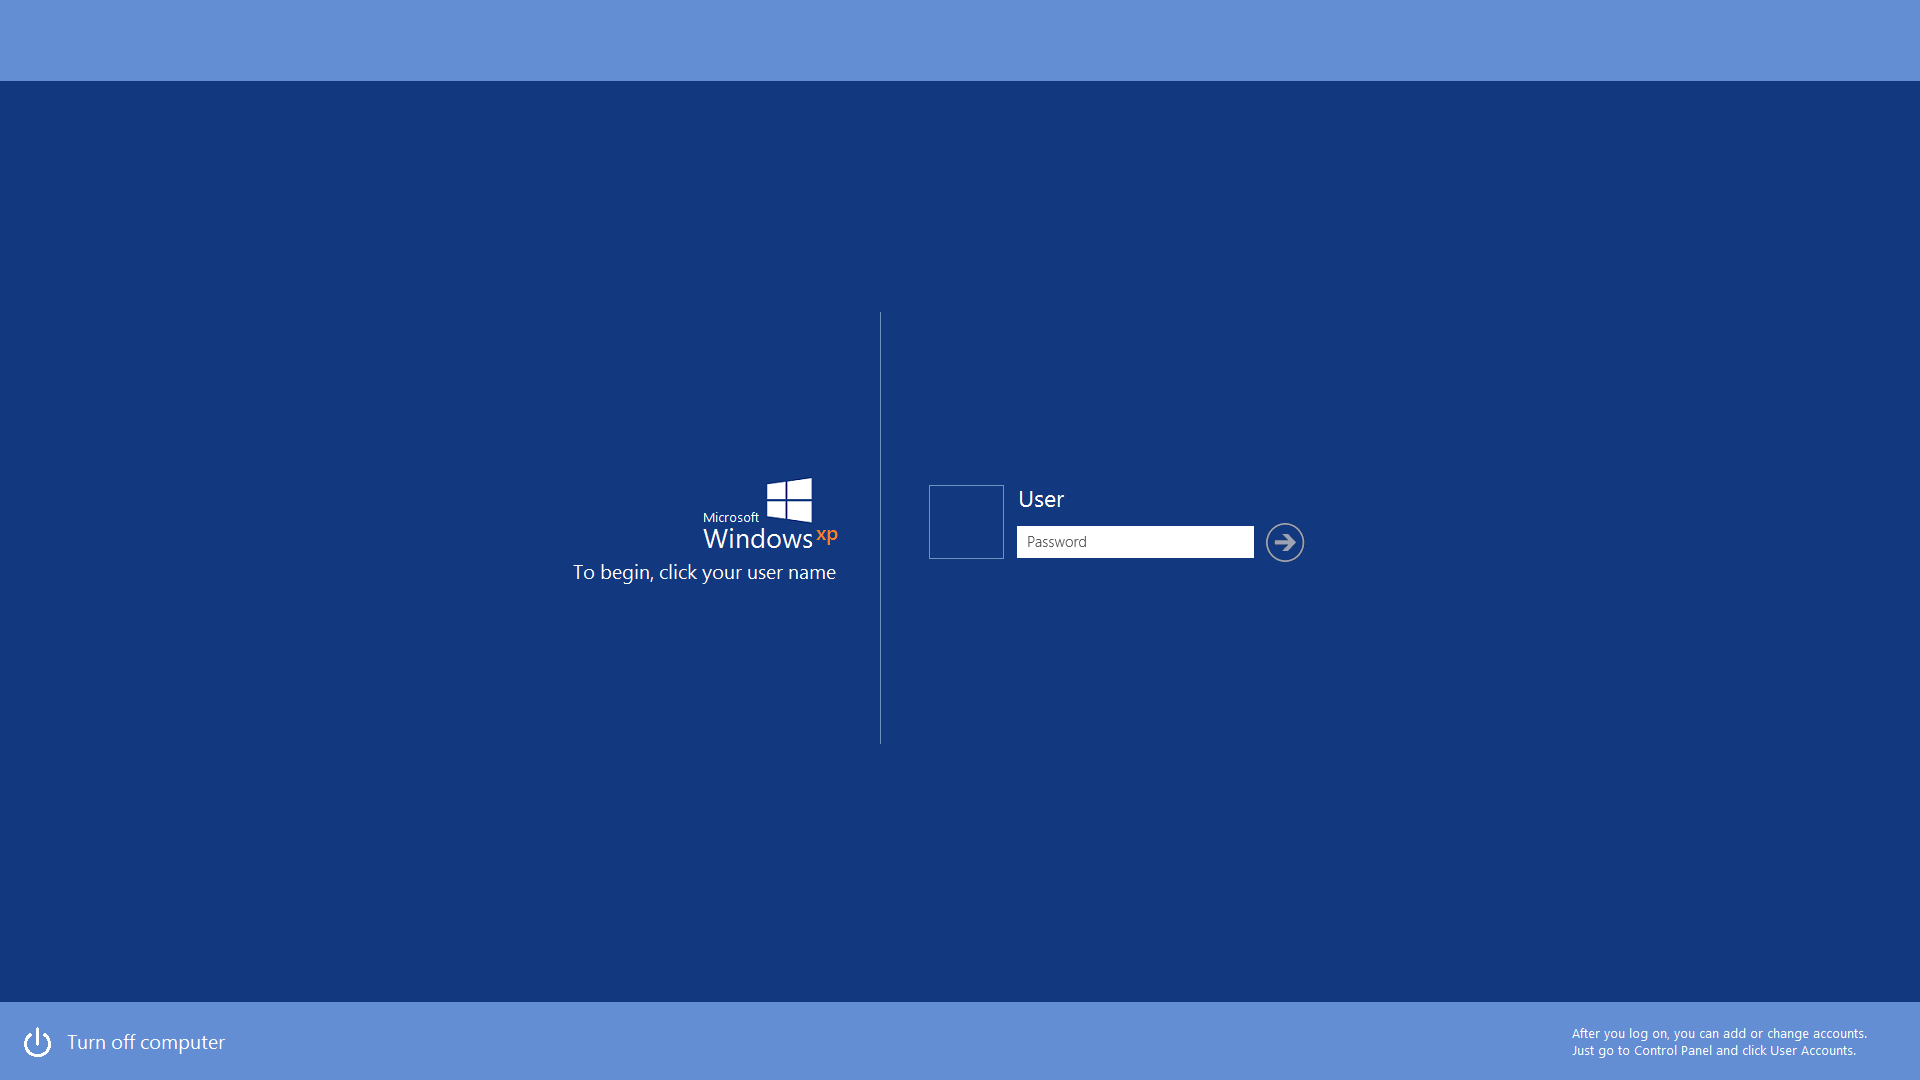 Windows XP Metro Logon Screen Concept by gifteddeviant on DeviantArt